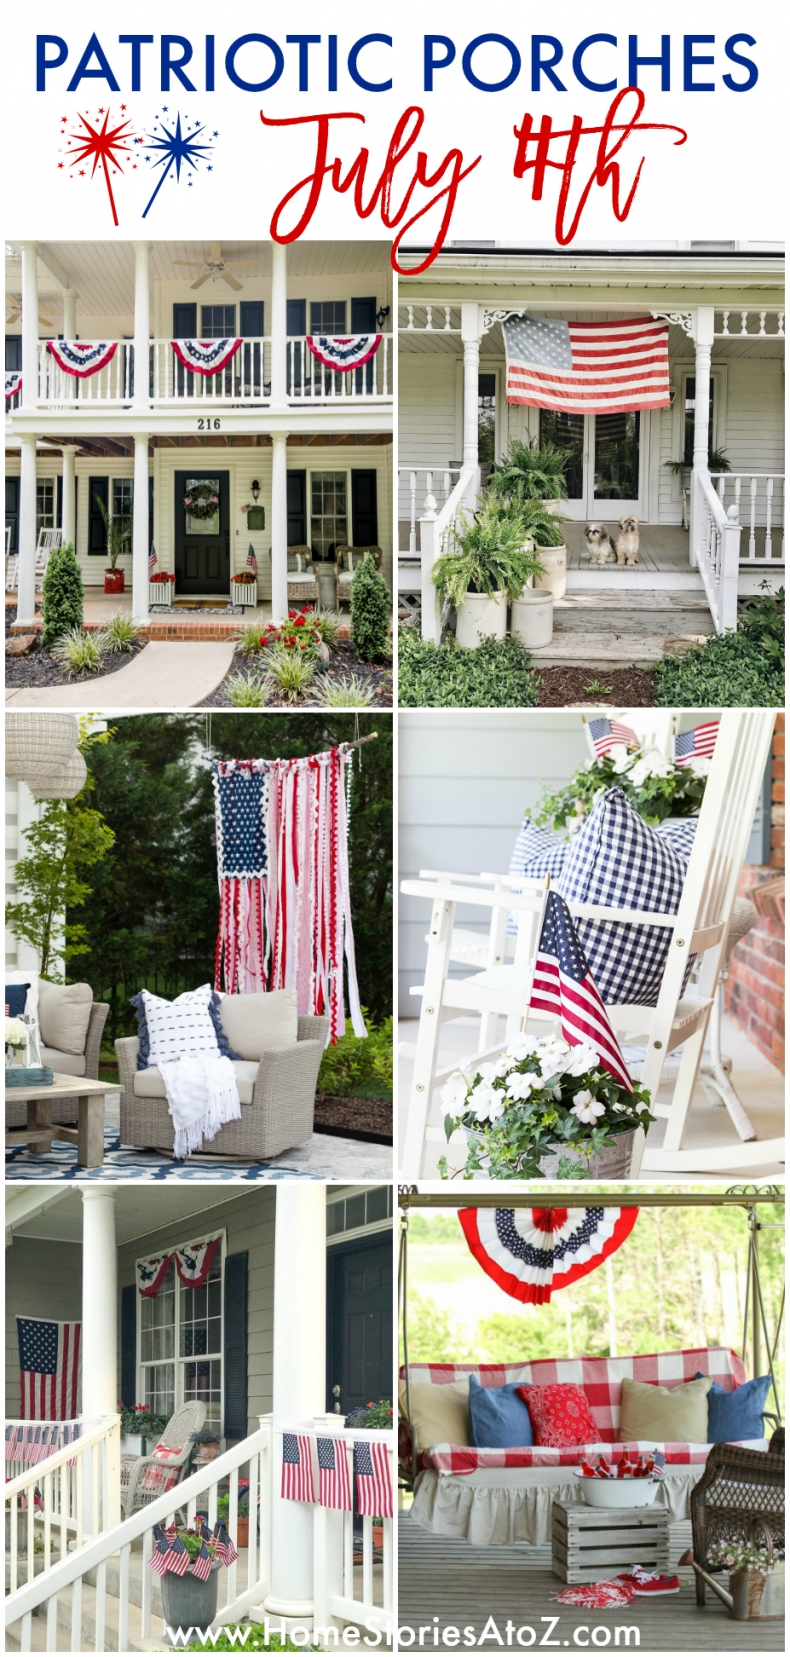 Patriotic Porches - Fourth of July Porch Decor